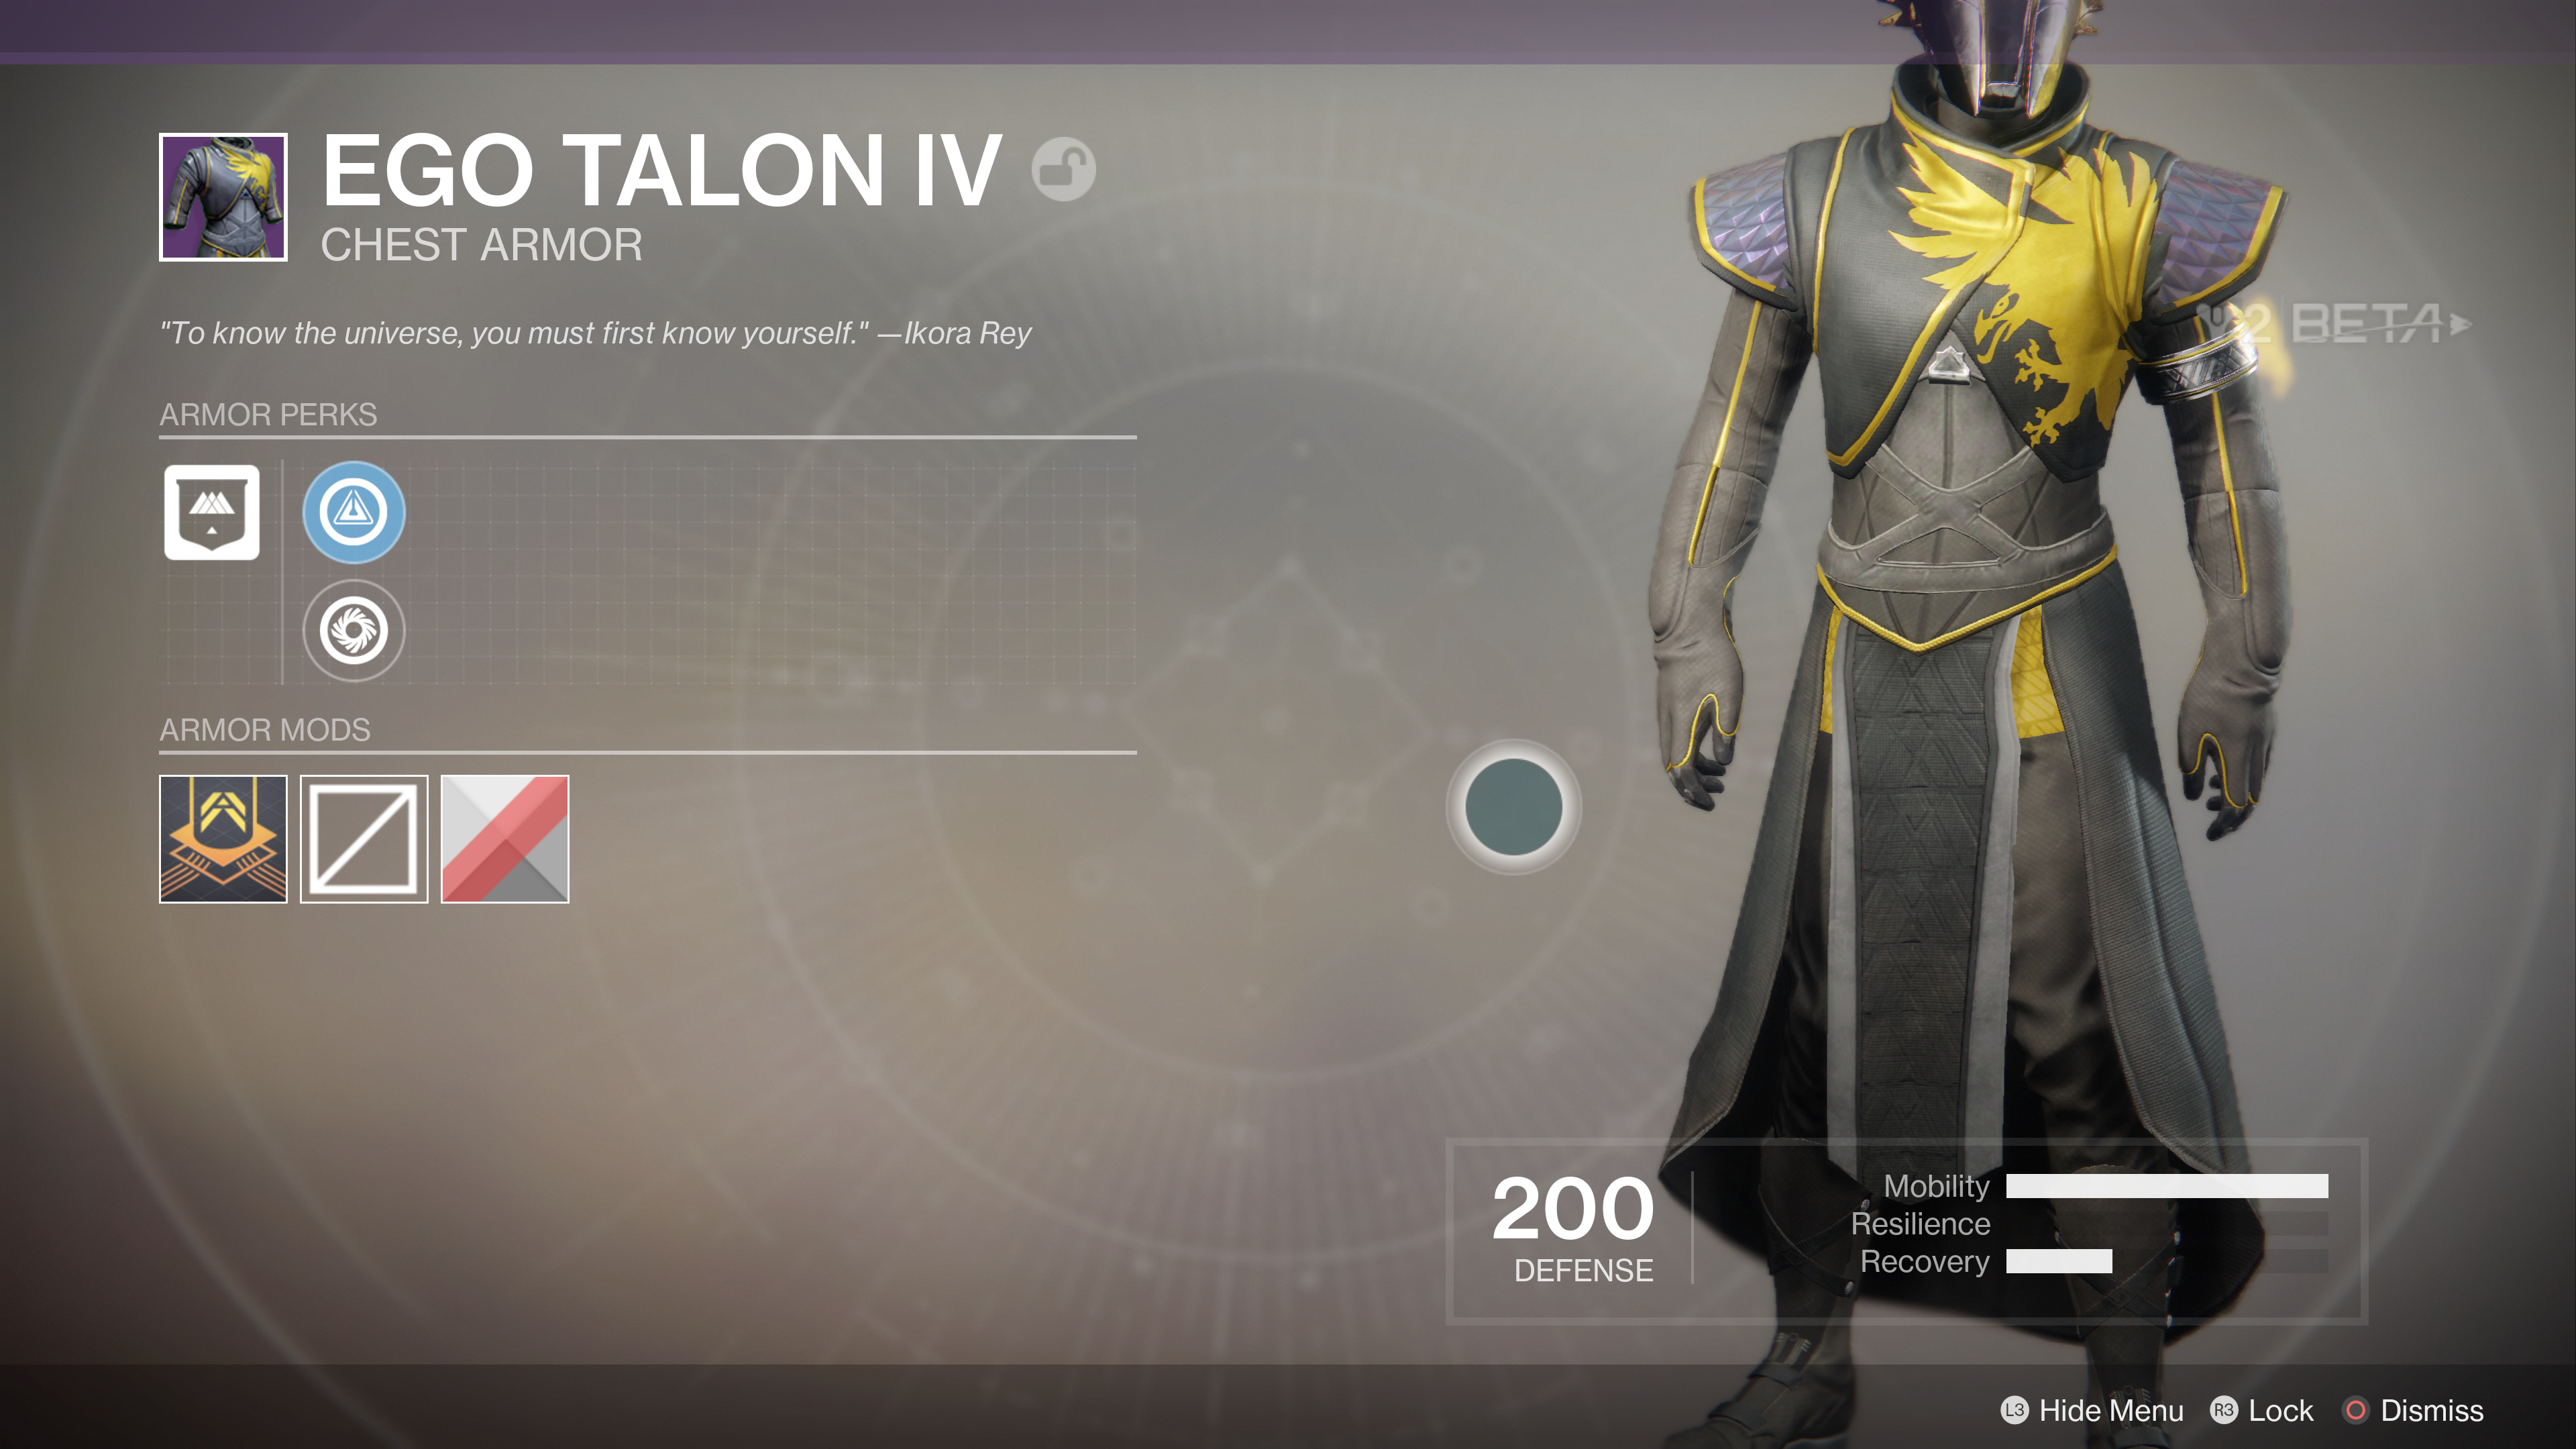 destiny 2 beta ego talon IV chest armour